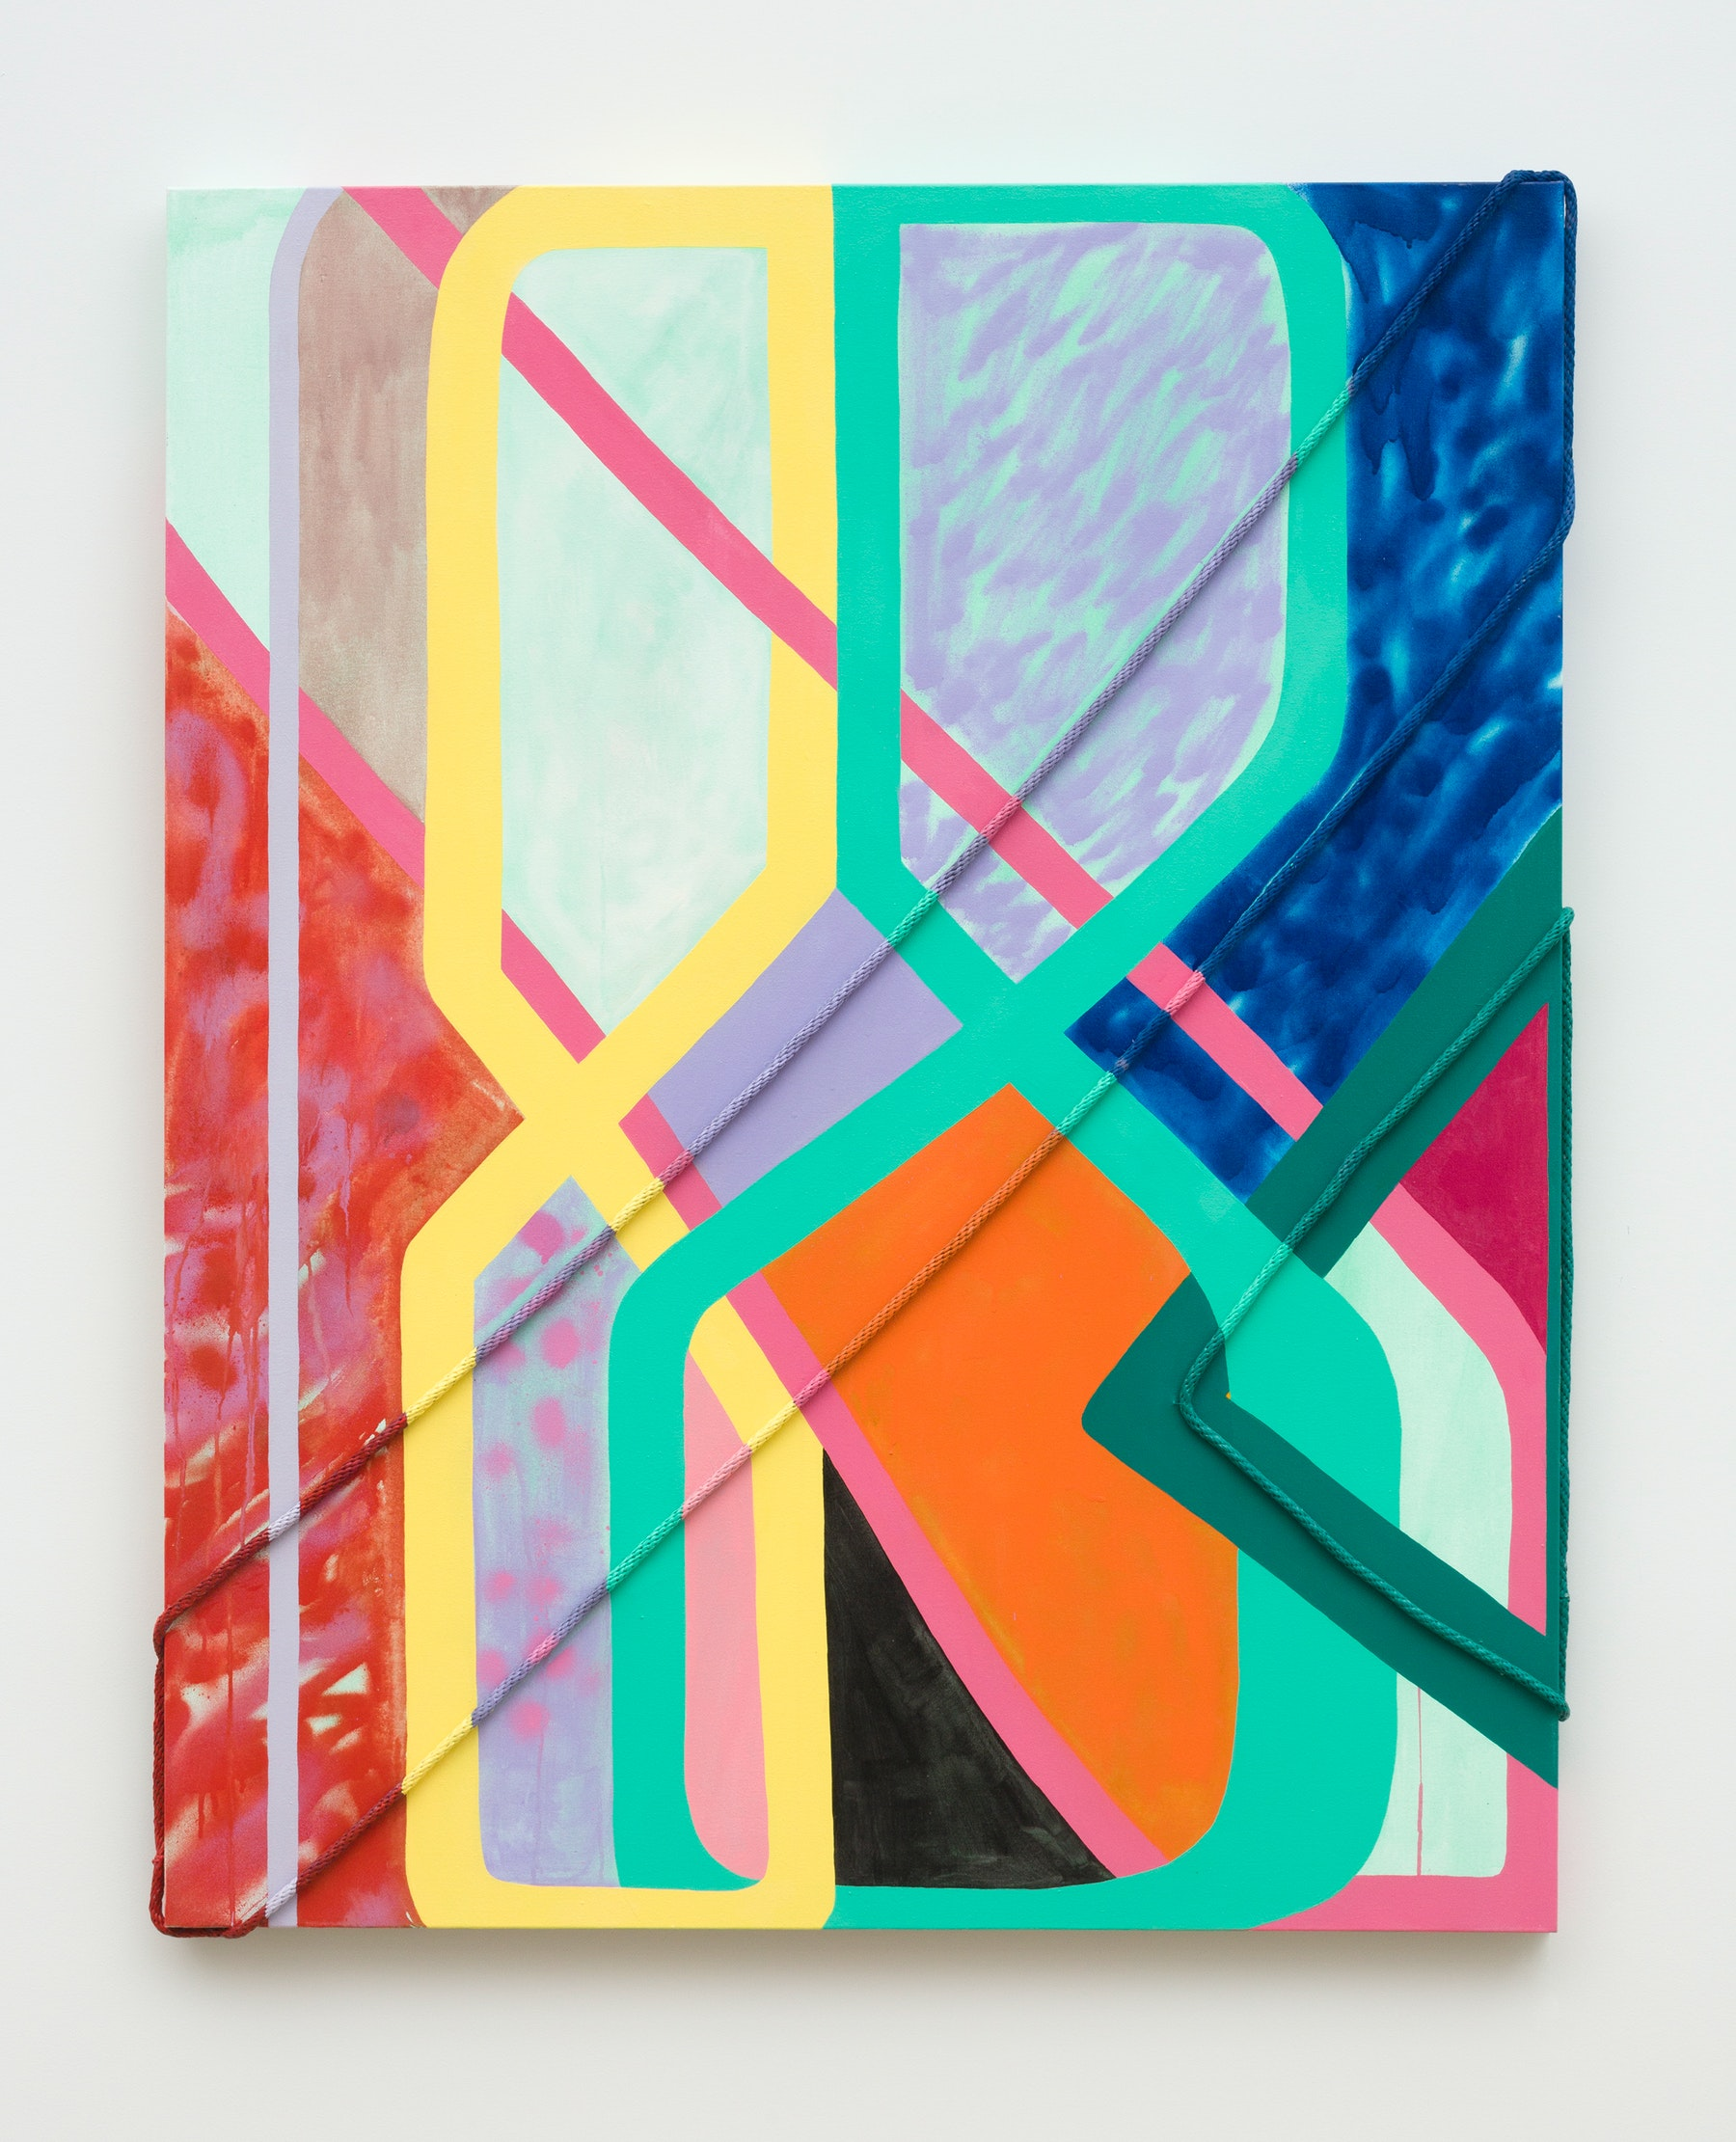 """Sarah Cain """"a ton of new,"""" 2020 Acrylic, gouache, latex on rope and canvas 61 x 49 x 2.5"""" [HxWxD] (154.94 x 124.46 x 6.35 cm) Inventory #CAS128 Courtesy of the artist and Vielmetter Los Angeles Photo credit: Jeff McLane"""